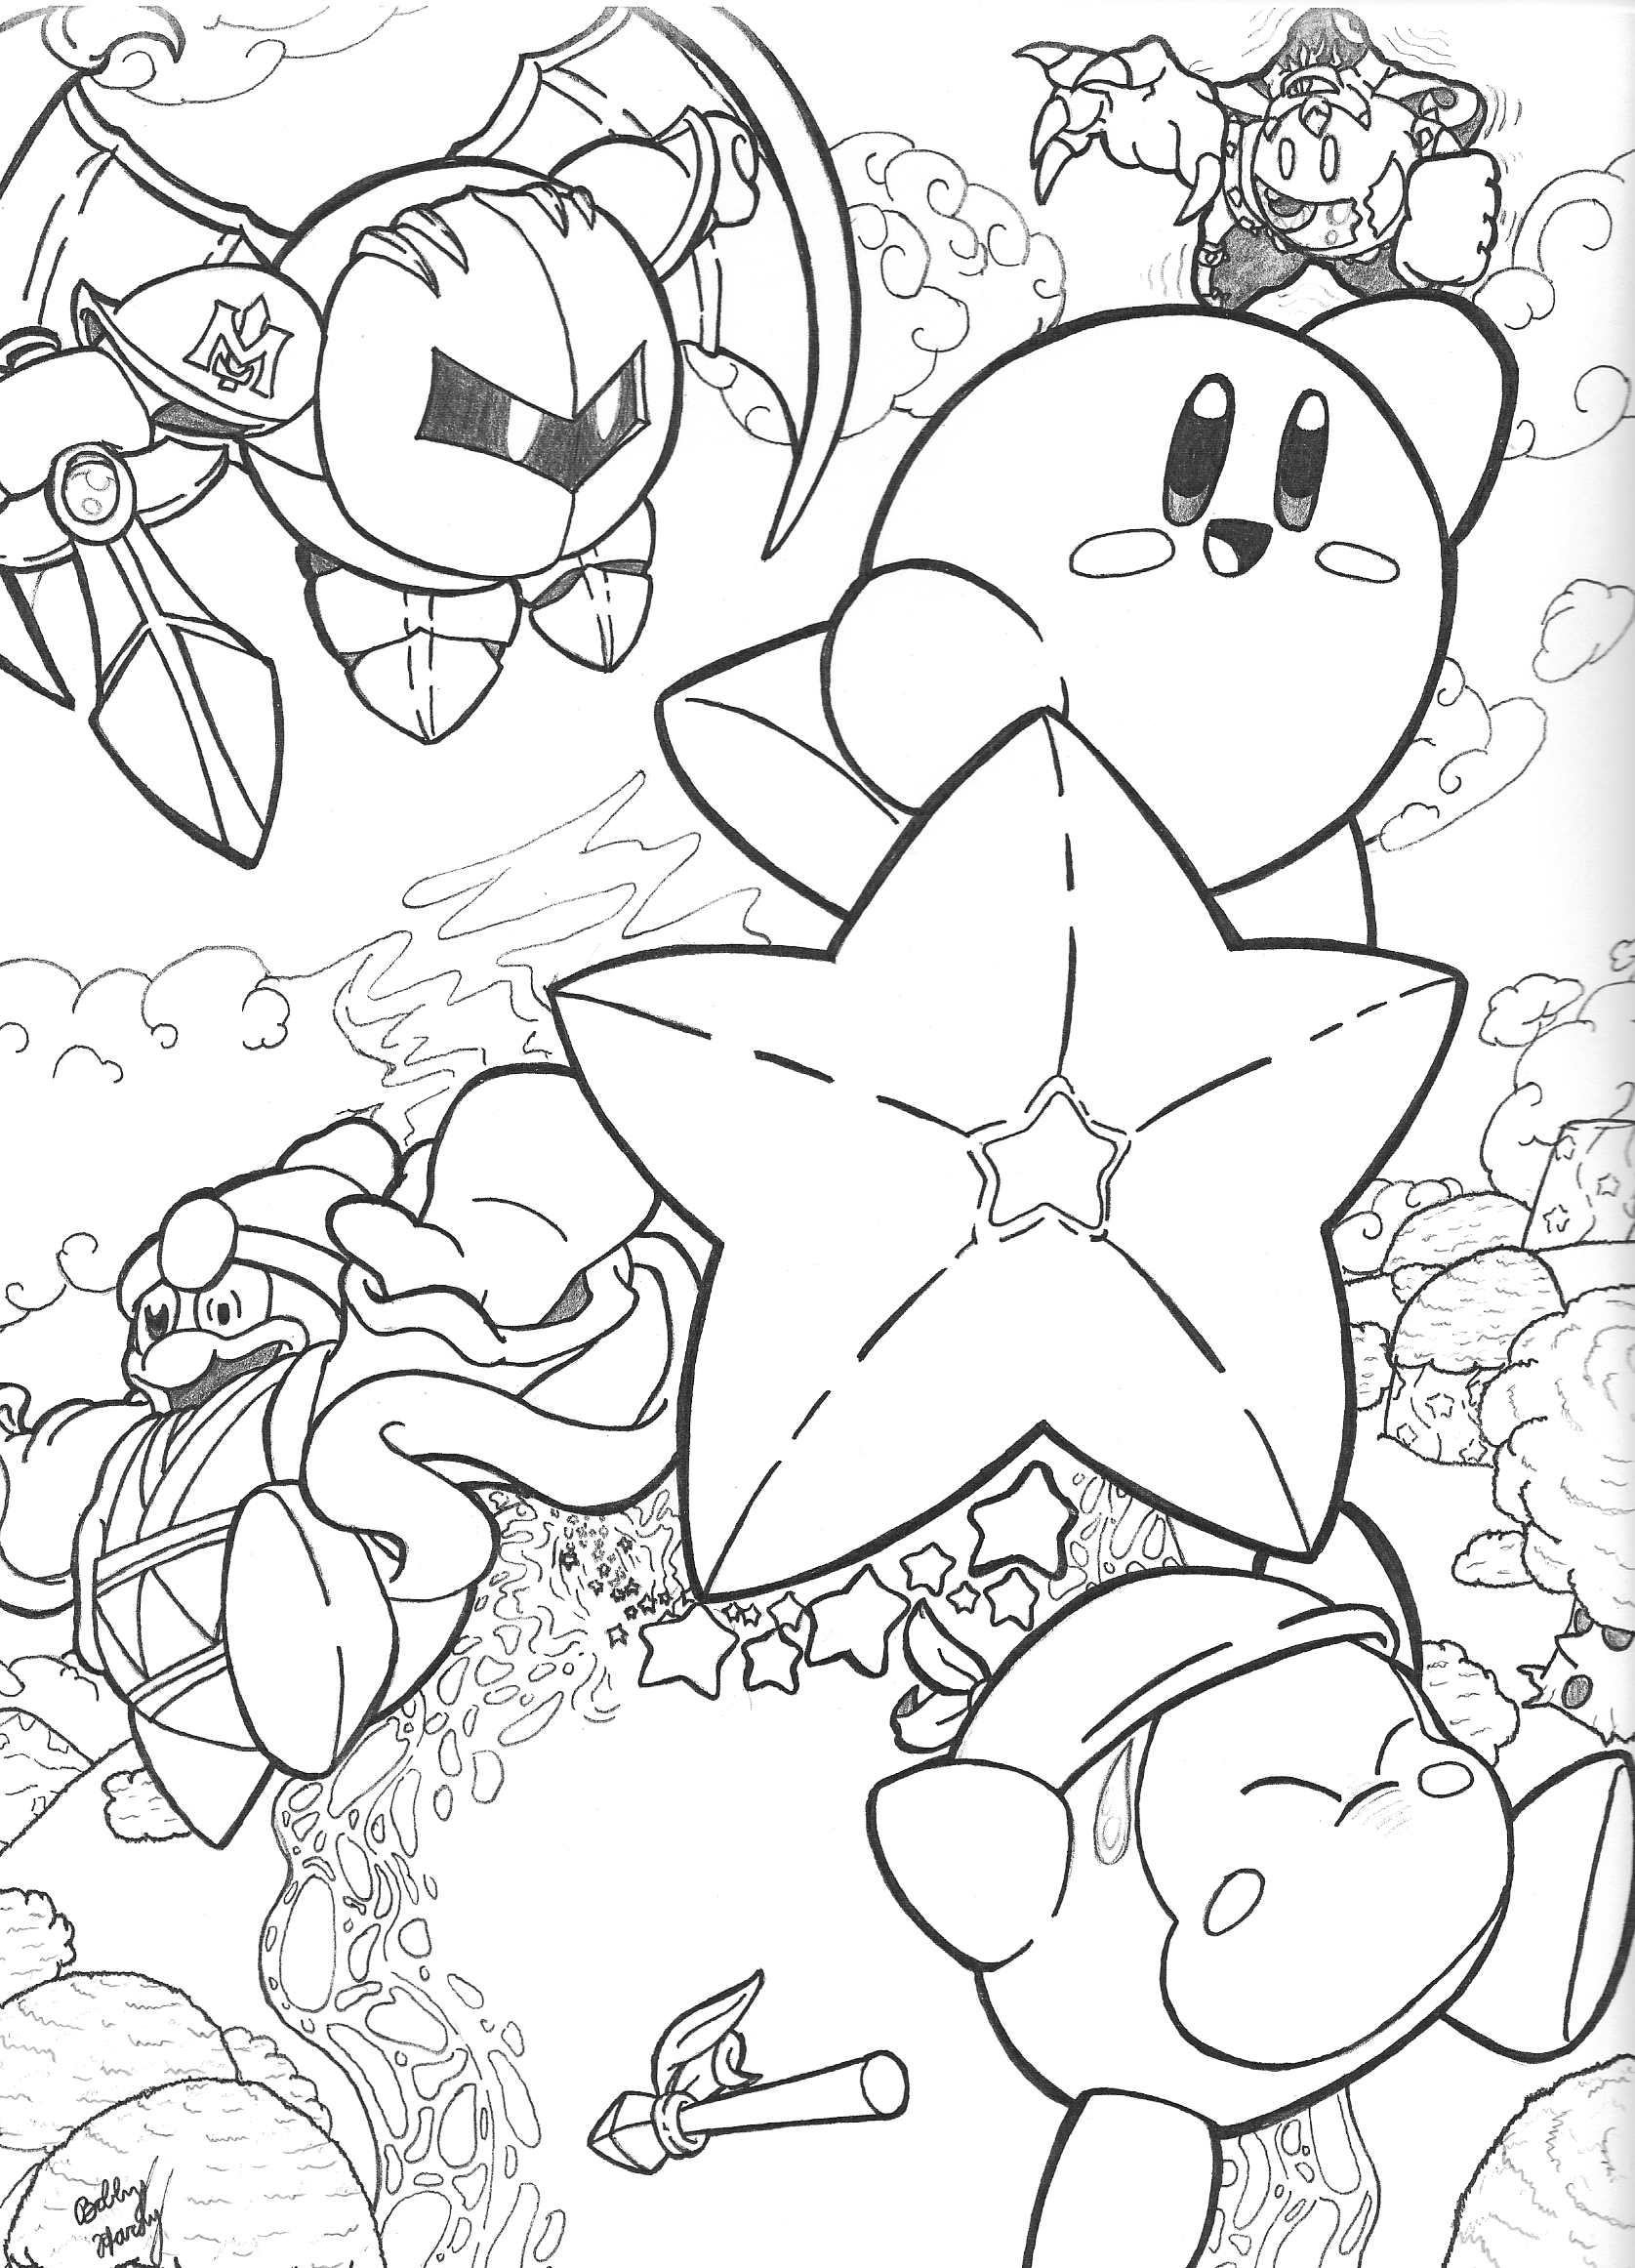 kirby star allies coloring pages free kirby coloring pages meta knight download free clip kirby star coloring allies pages